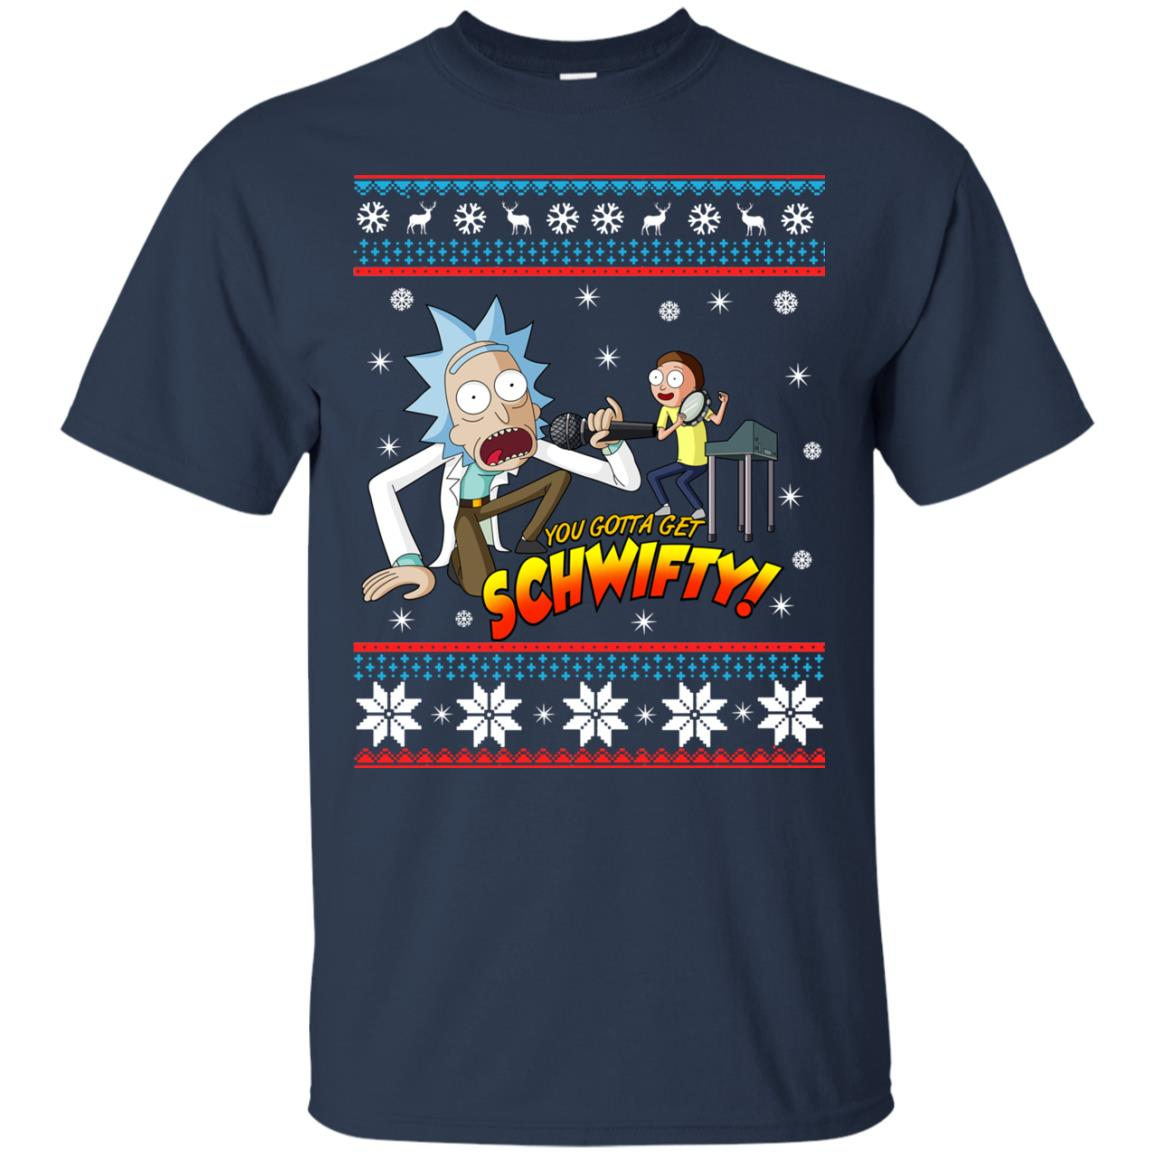 image 2410 - You gotta get Schwifty Ugly Christmas sweater, hoodie